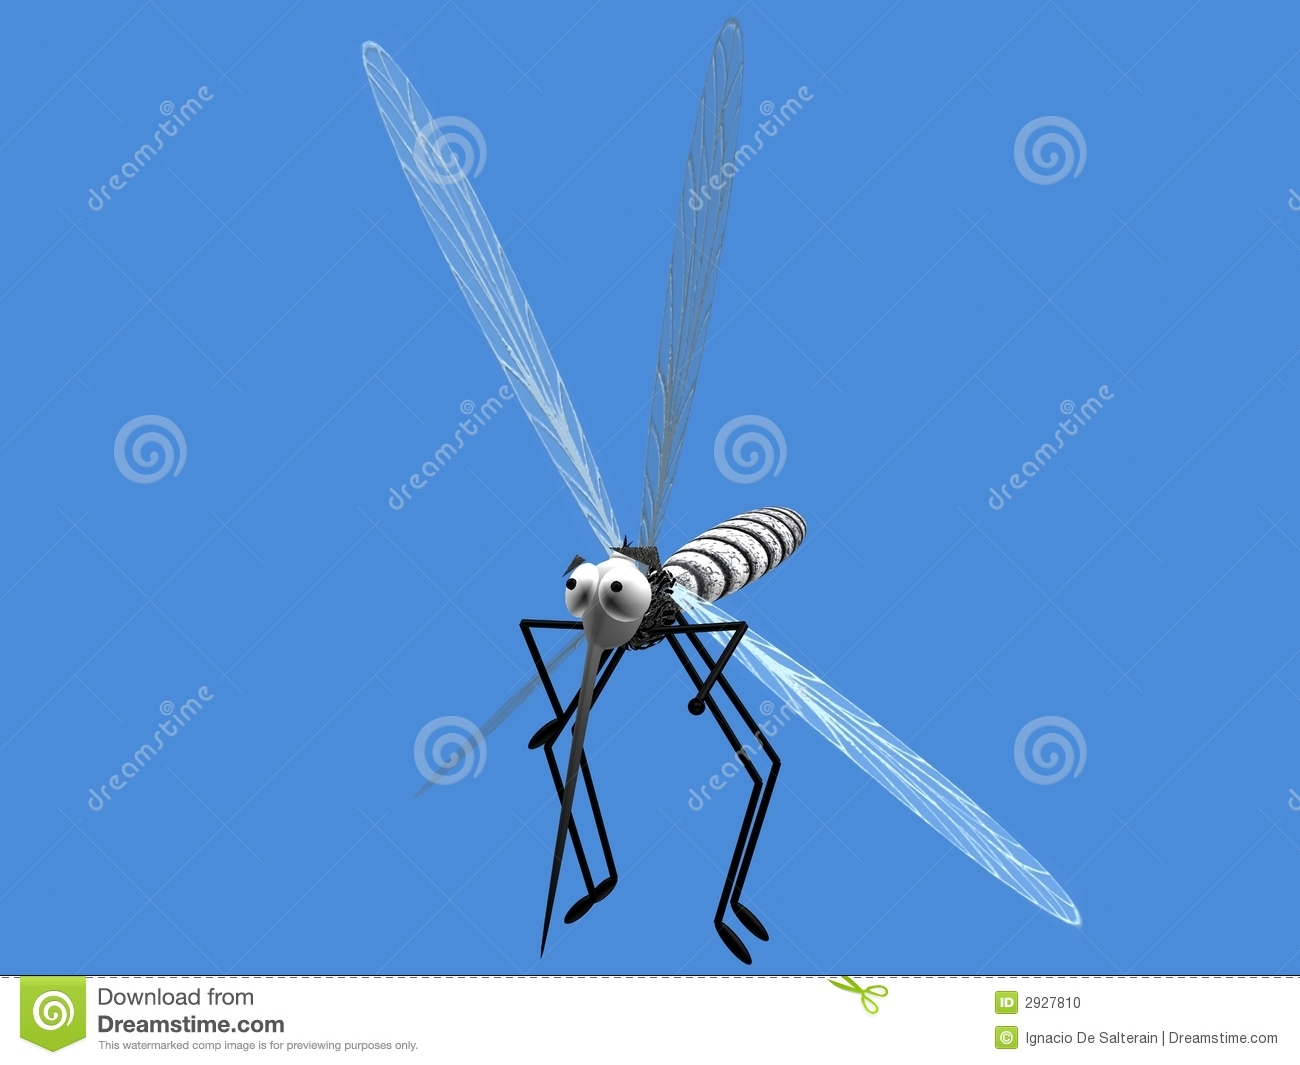 Danger 3d Wallpaper Download Mosquito Flying Stock Photo Image 2927810